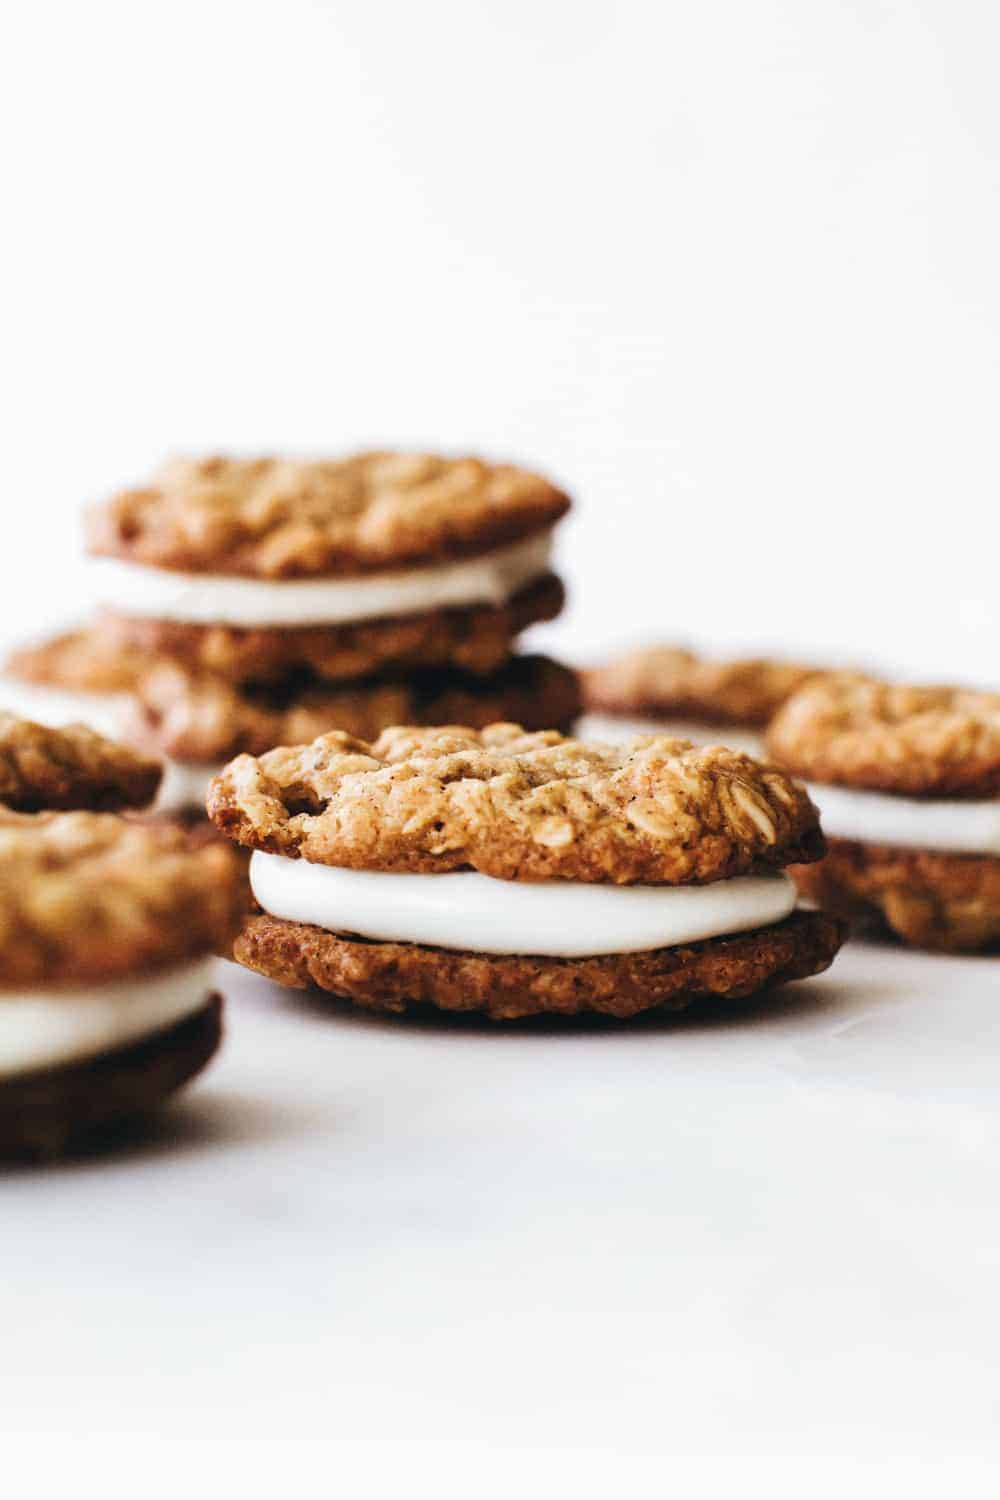 Making Oatmeal Cream Pies at home is easy and so delicious